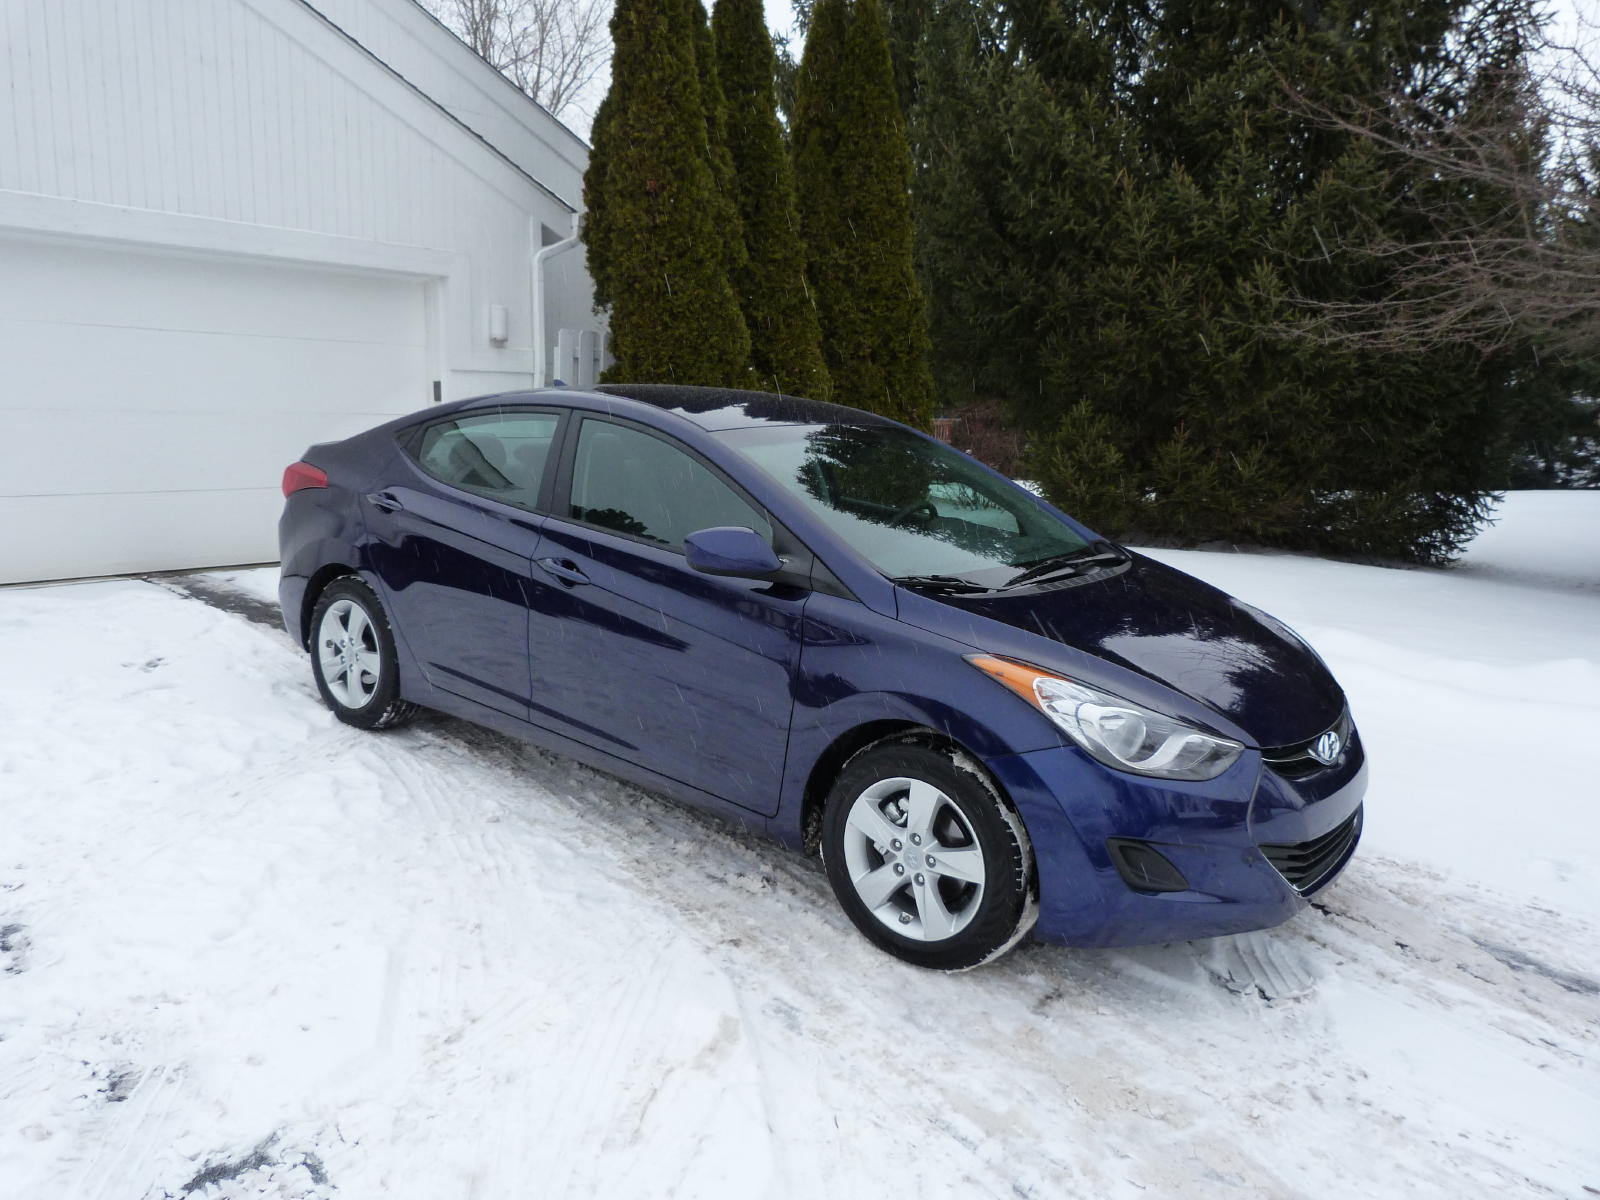 Review: 2011 Hyundai Elantra - The Truth About Cars